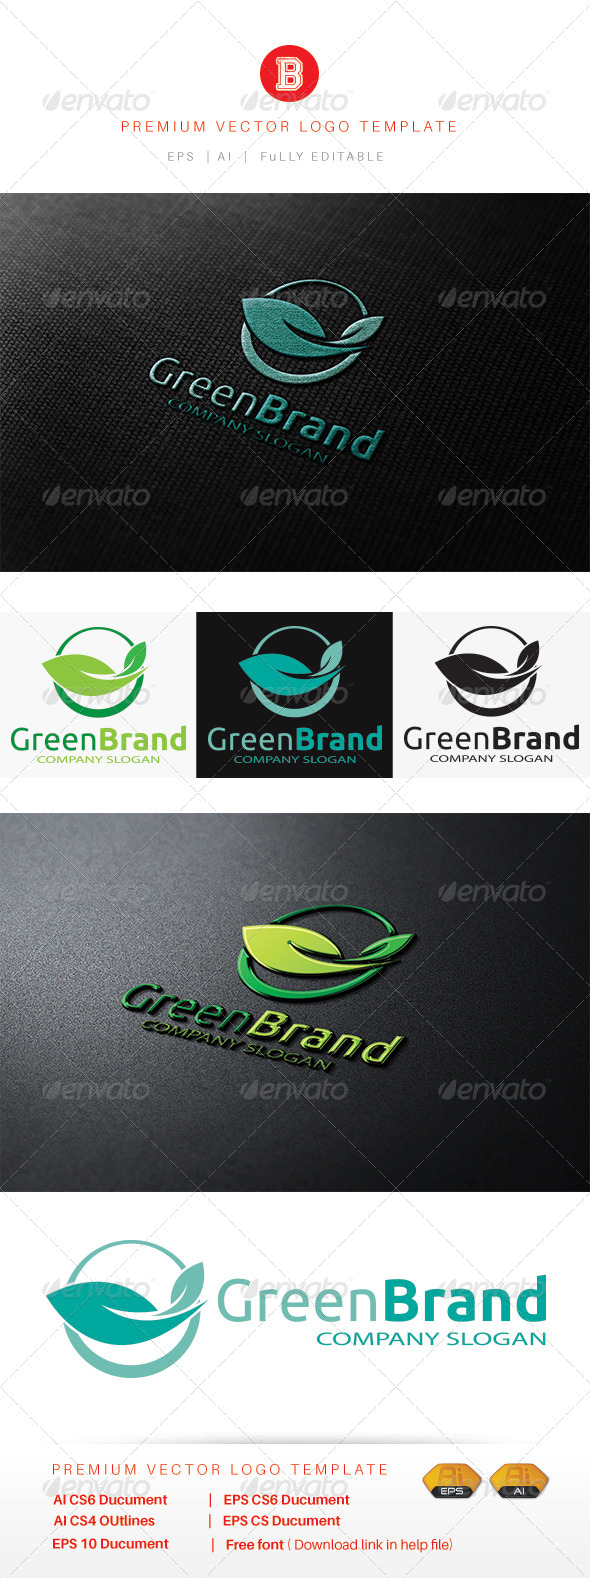 GraphicRiver Green Brand 8530195